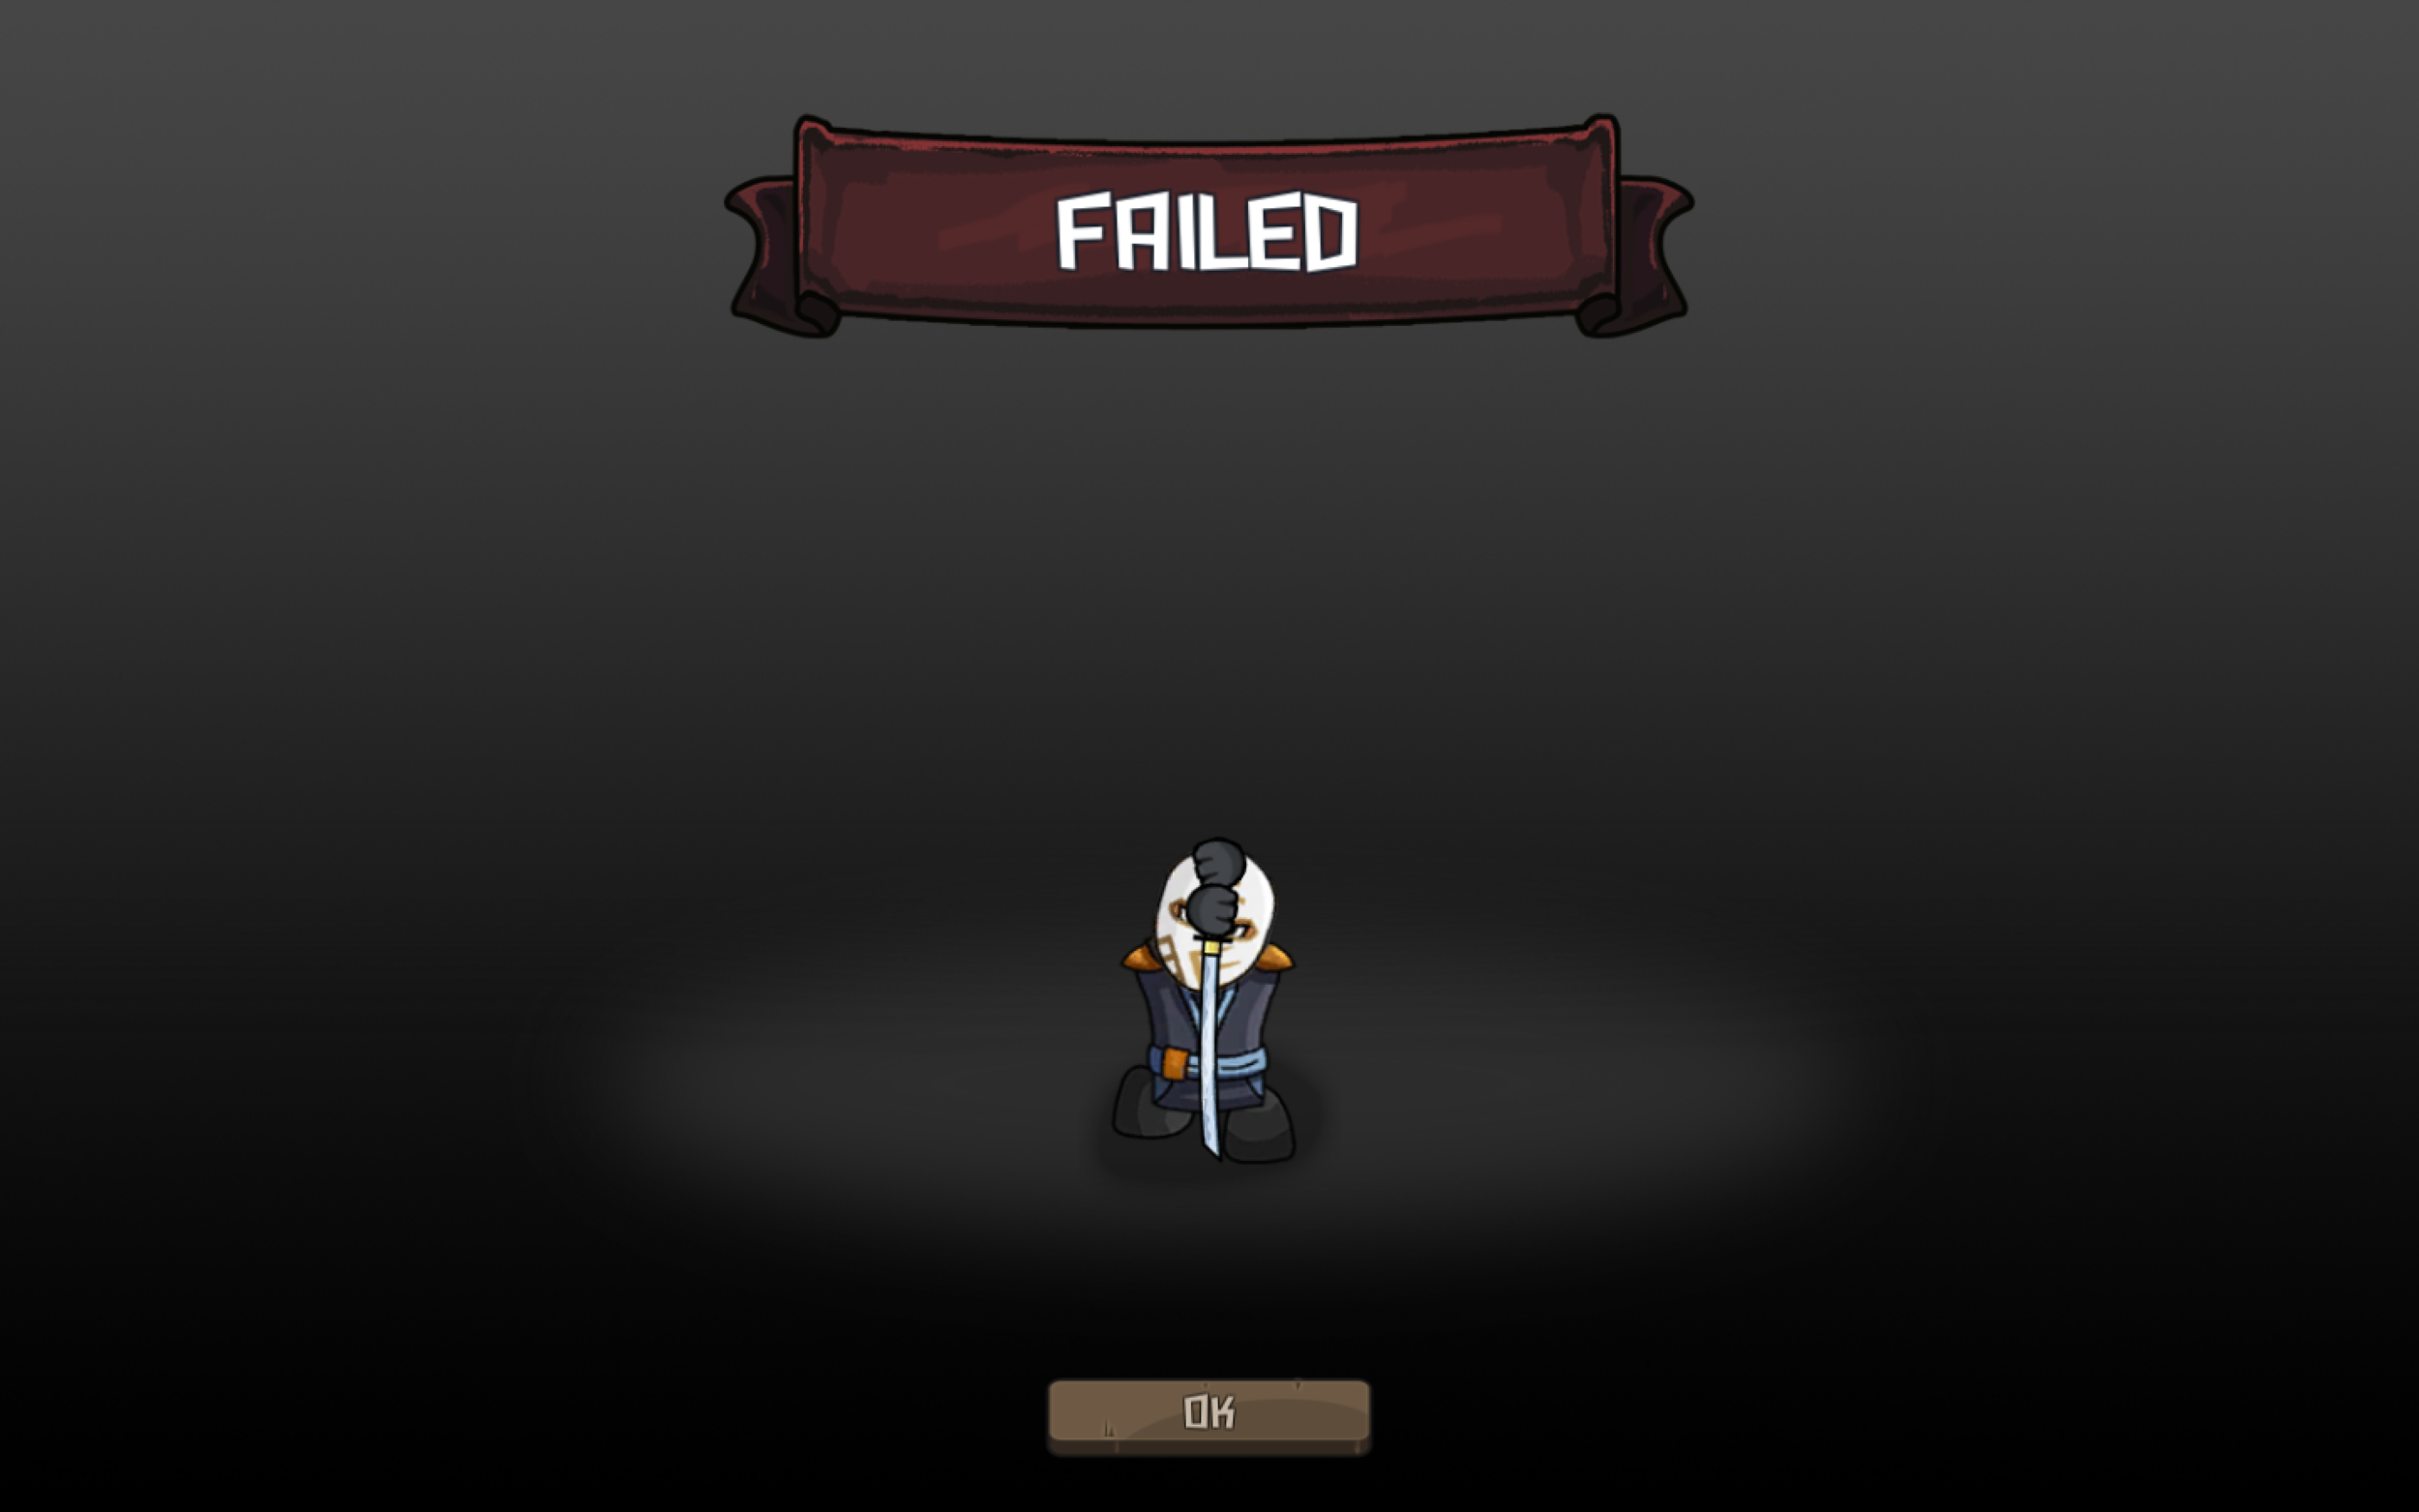 Ninja_Tycoon_Review Failed.png